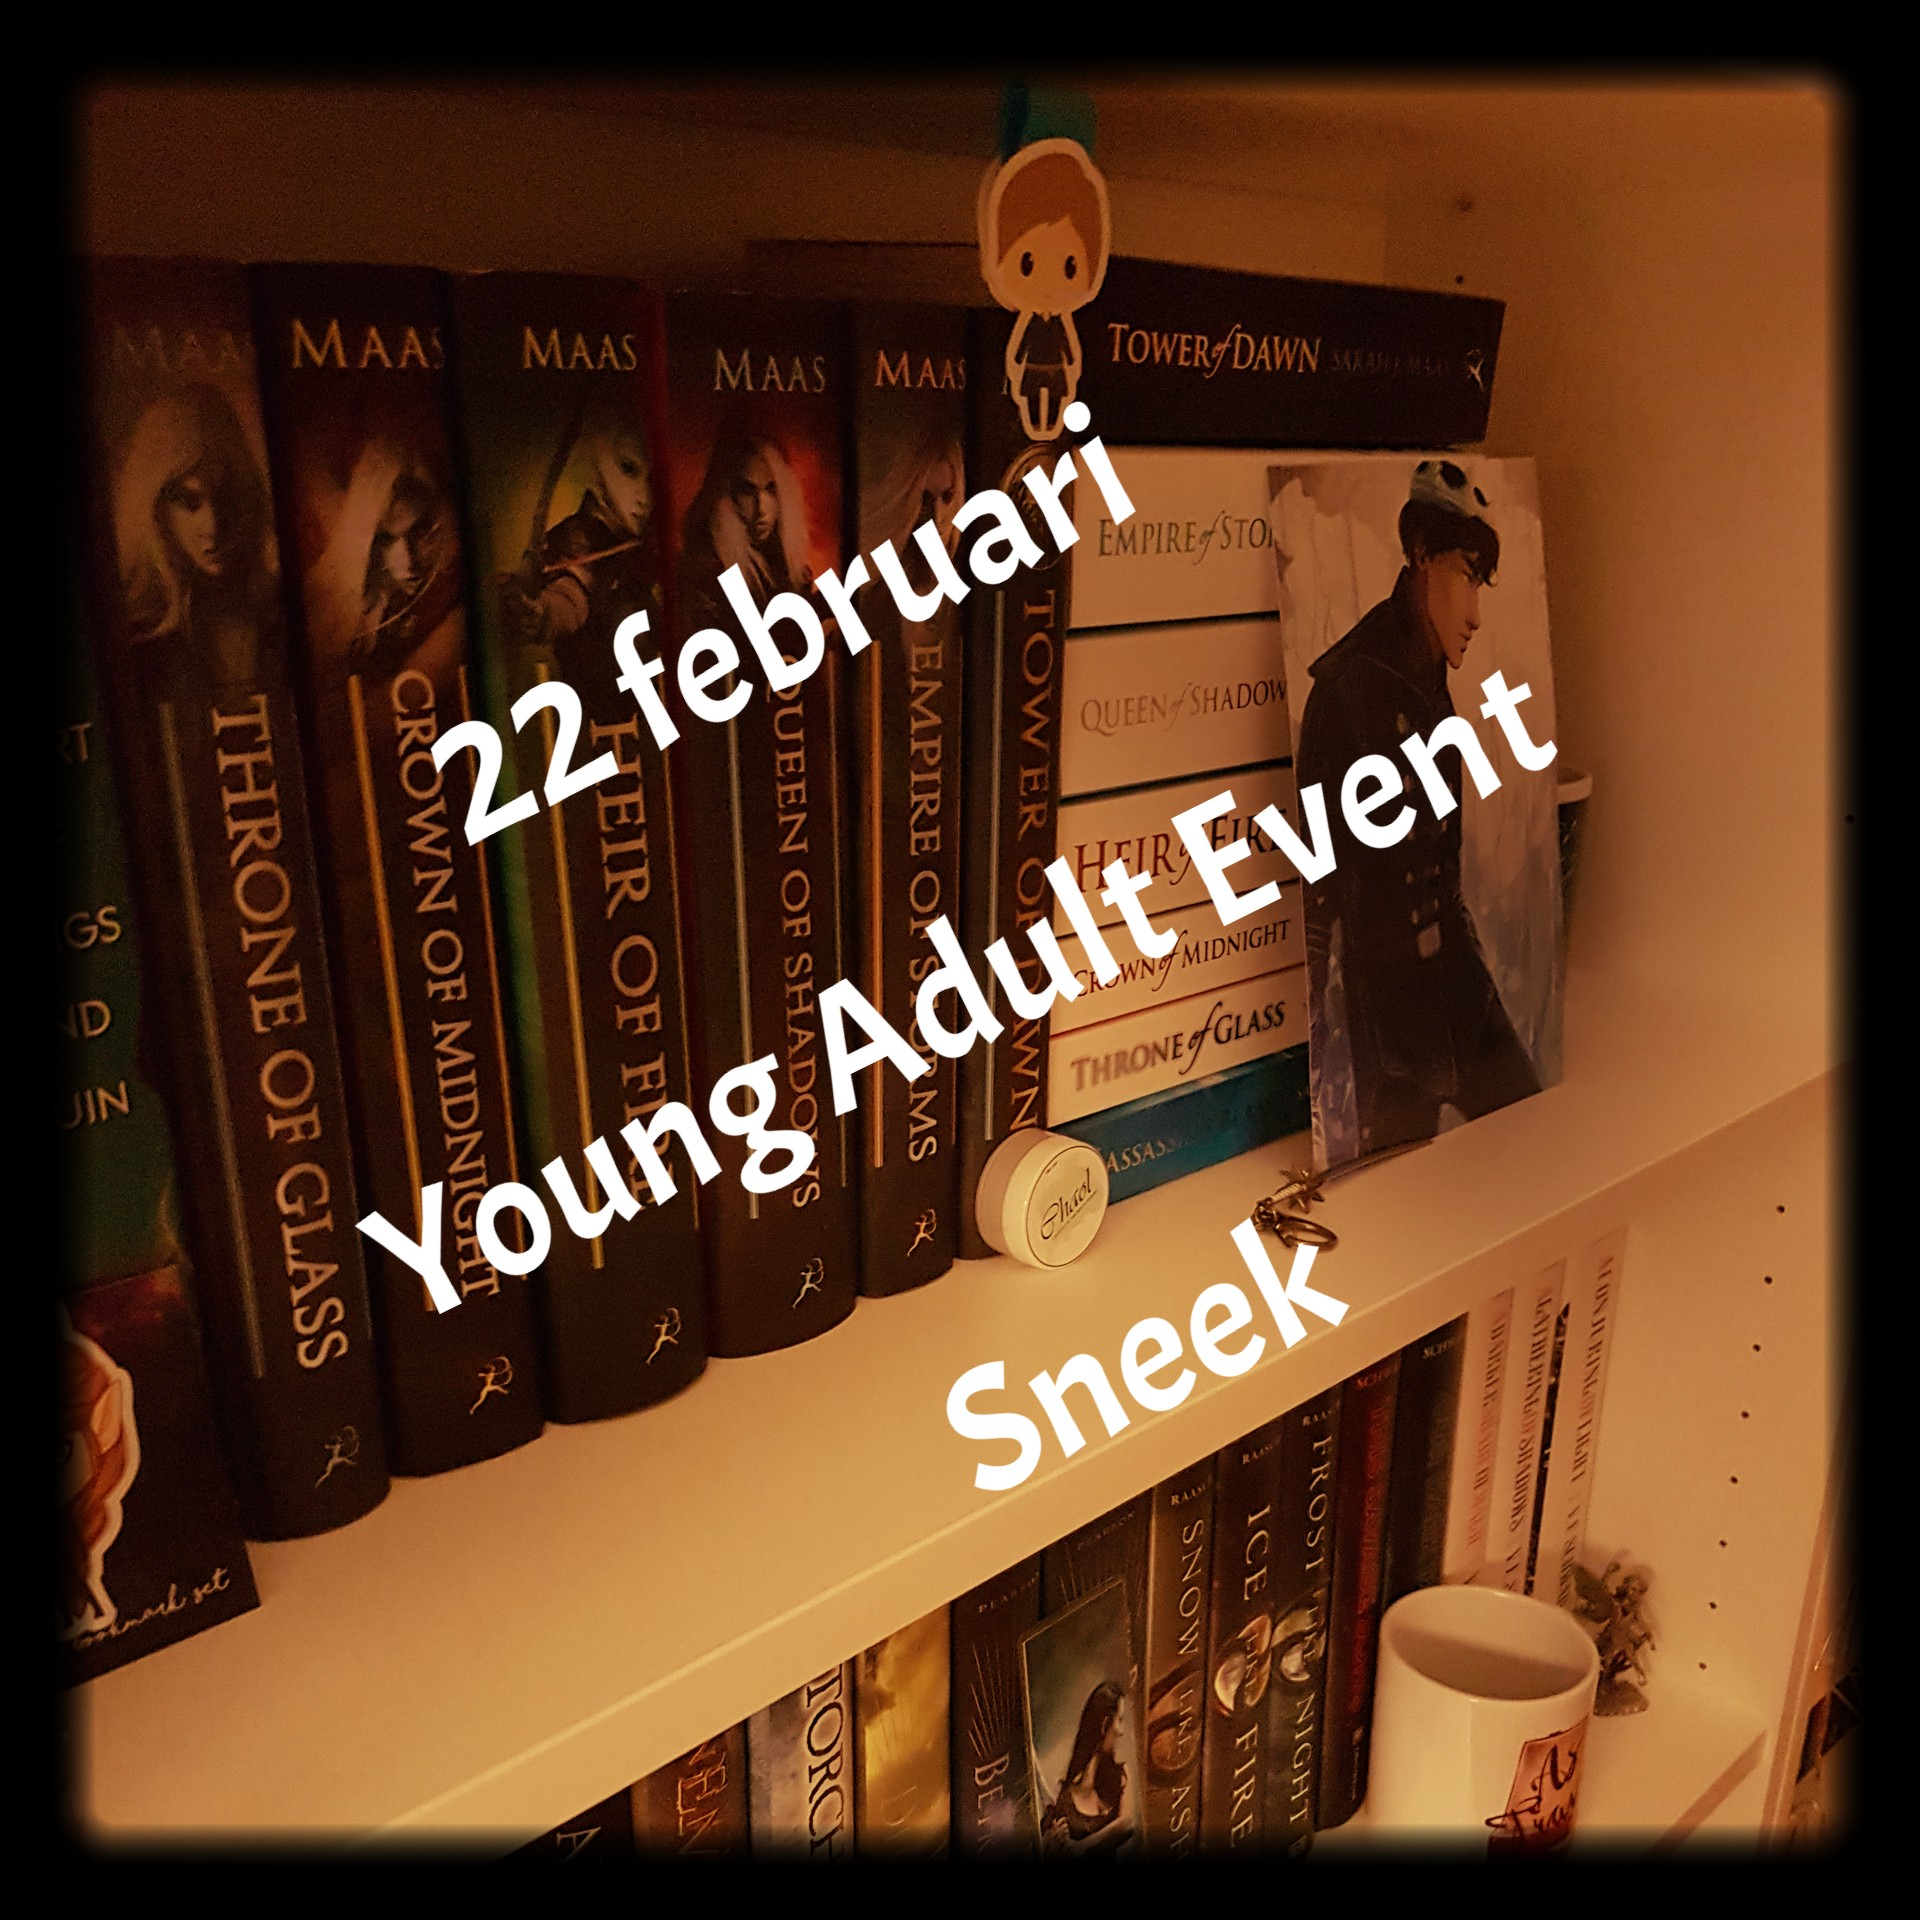 Not young adult empire com can read